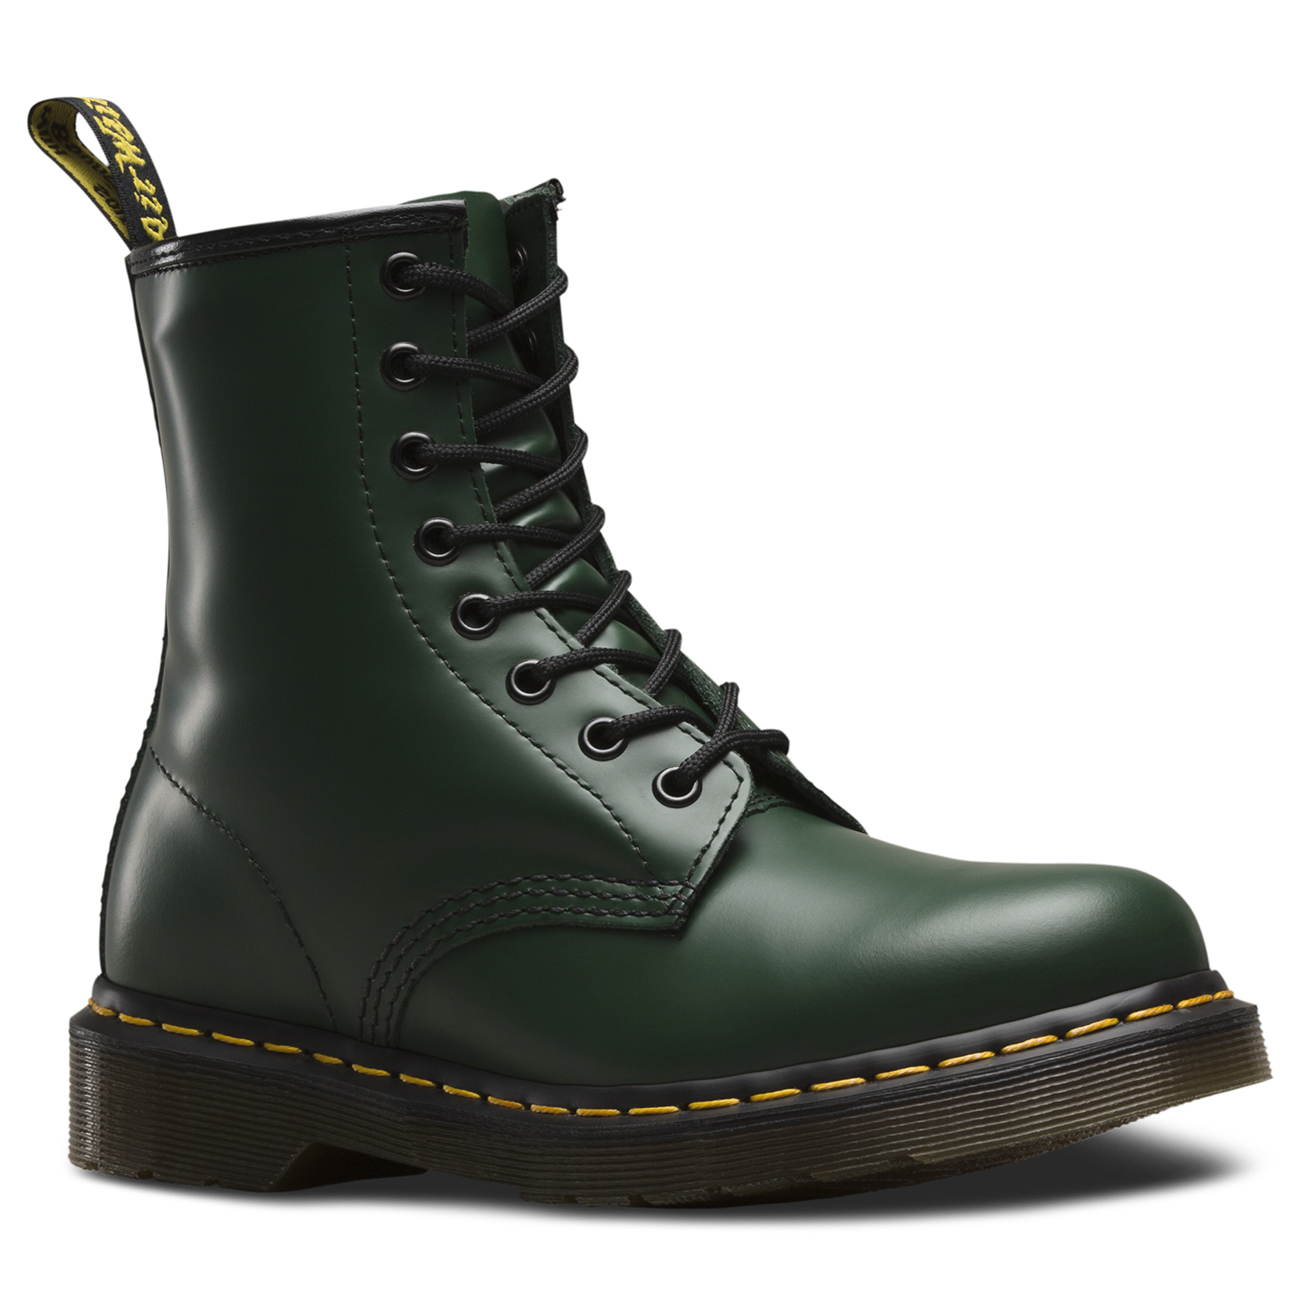 Unisex Adults Dr Martens 1460 Smooth